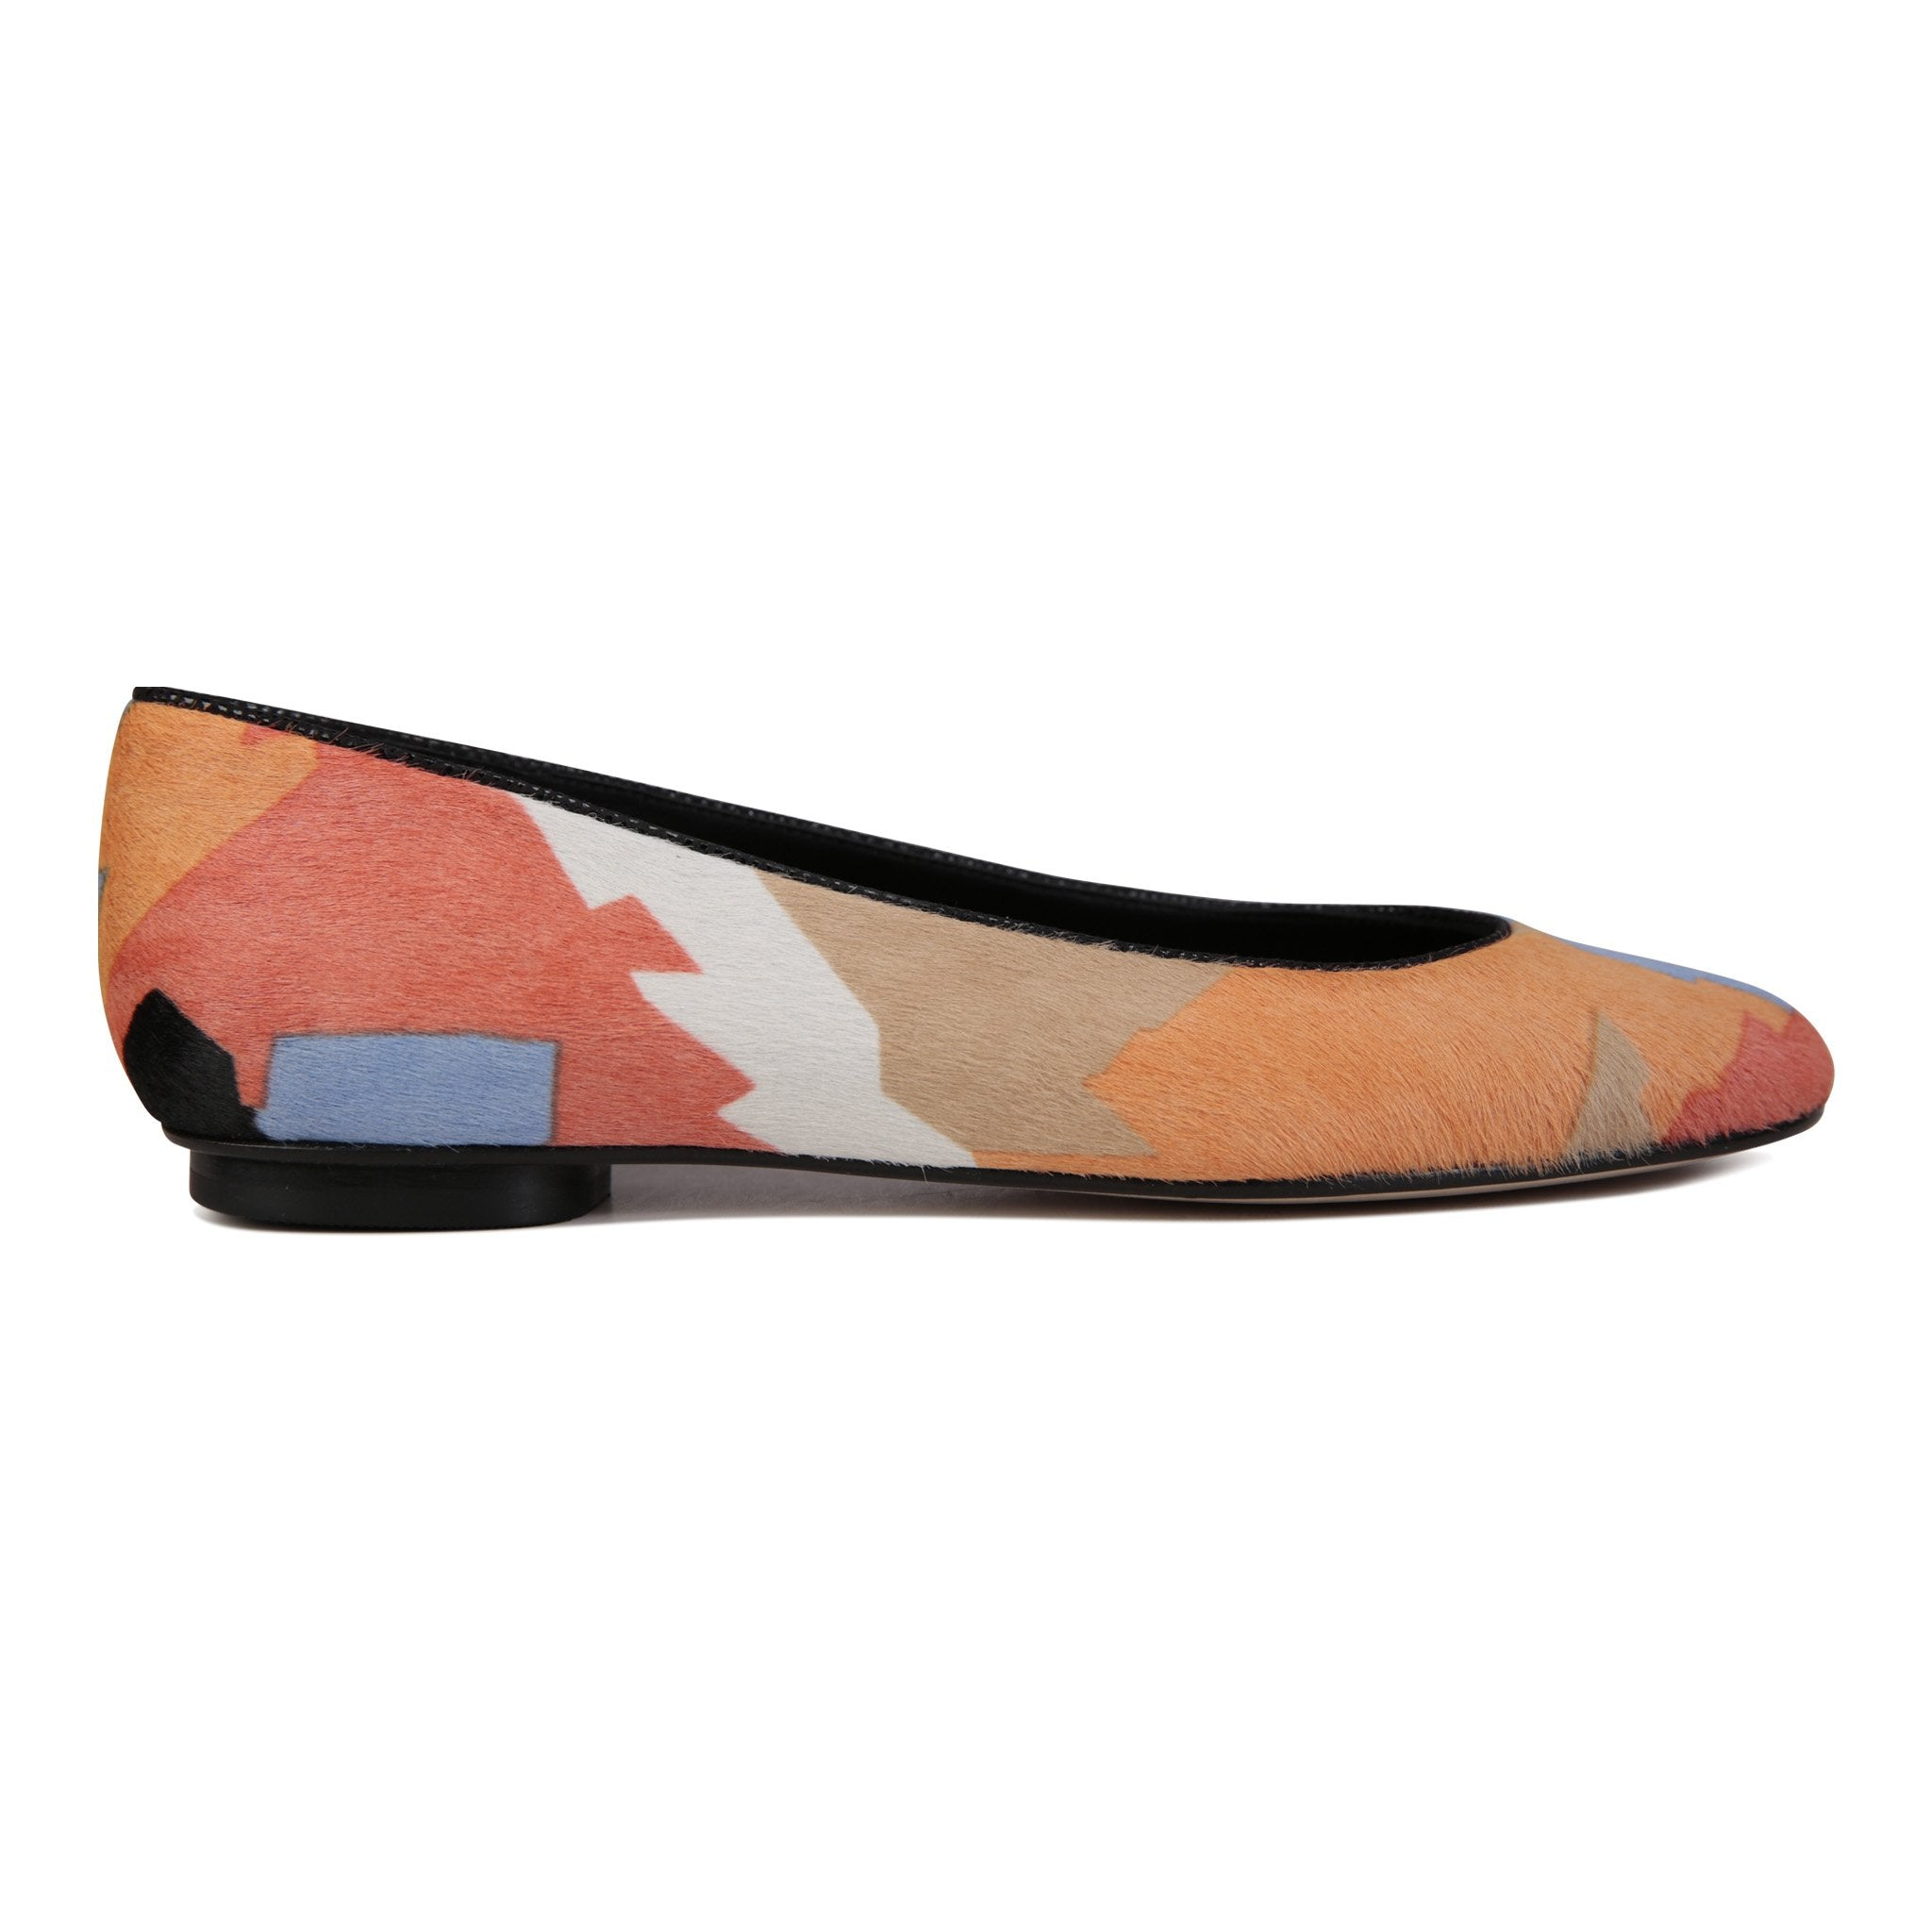 ROMA - Calf Hair Rio II, VIAJIYU - Women's Hand Made Sustainable Luxury Shoes. Made in Italy. Made to Order.